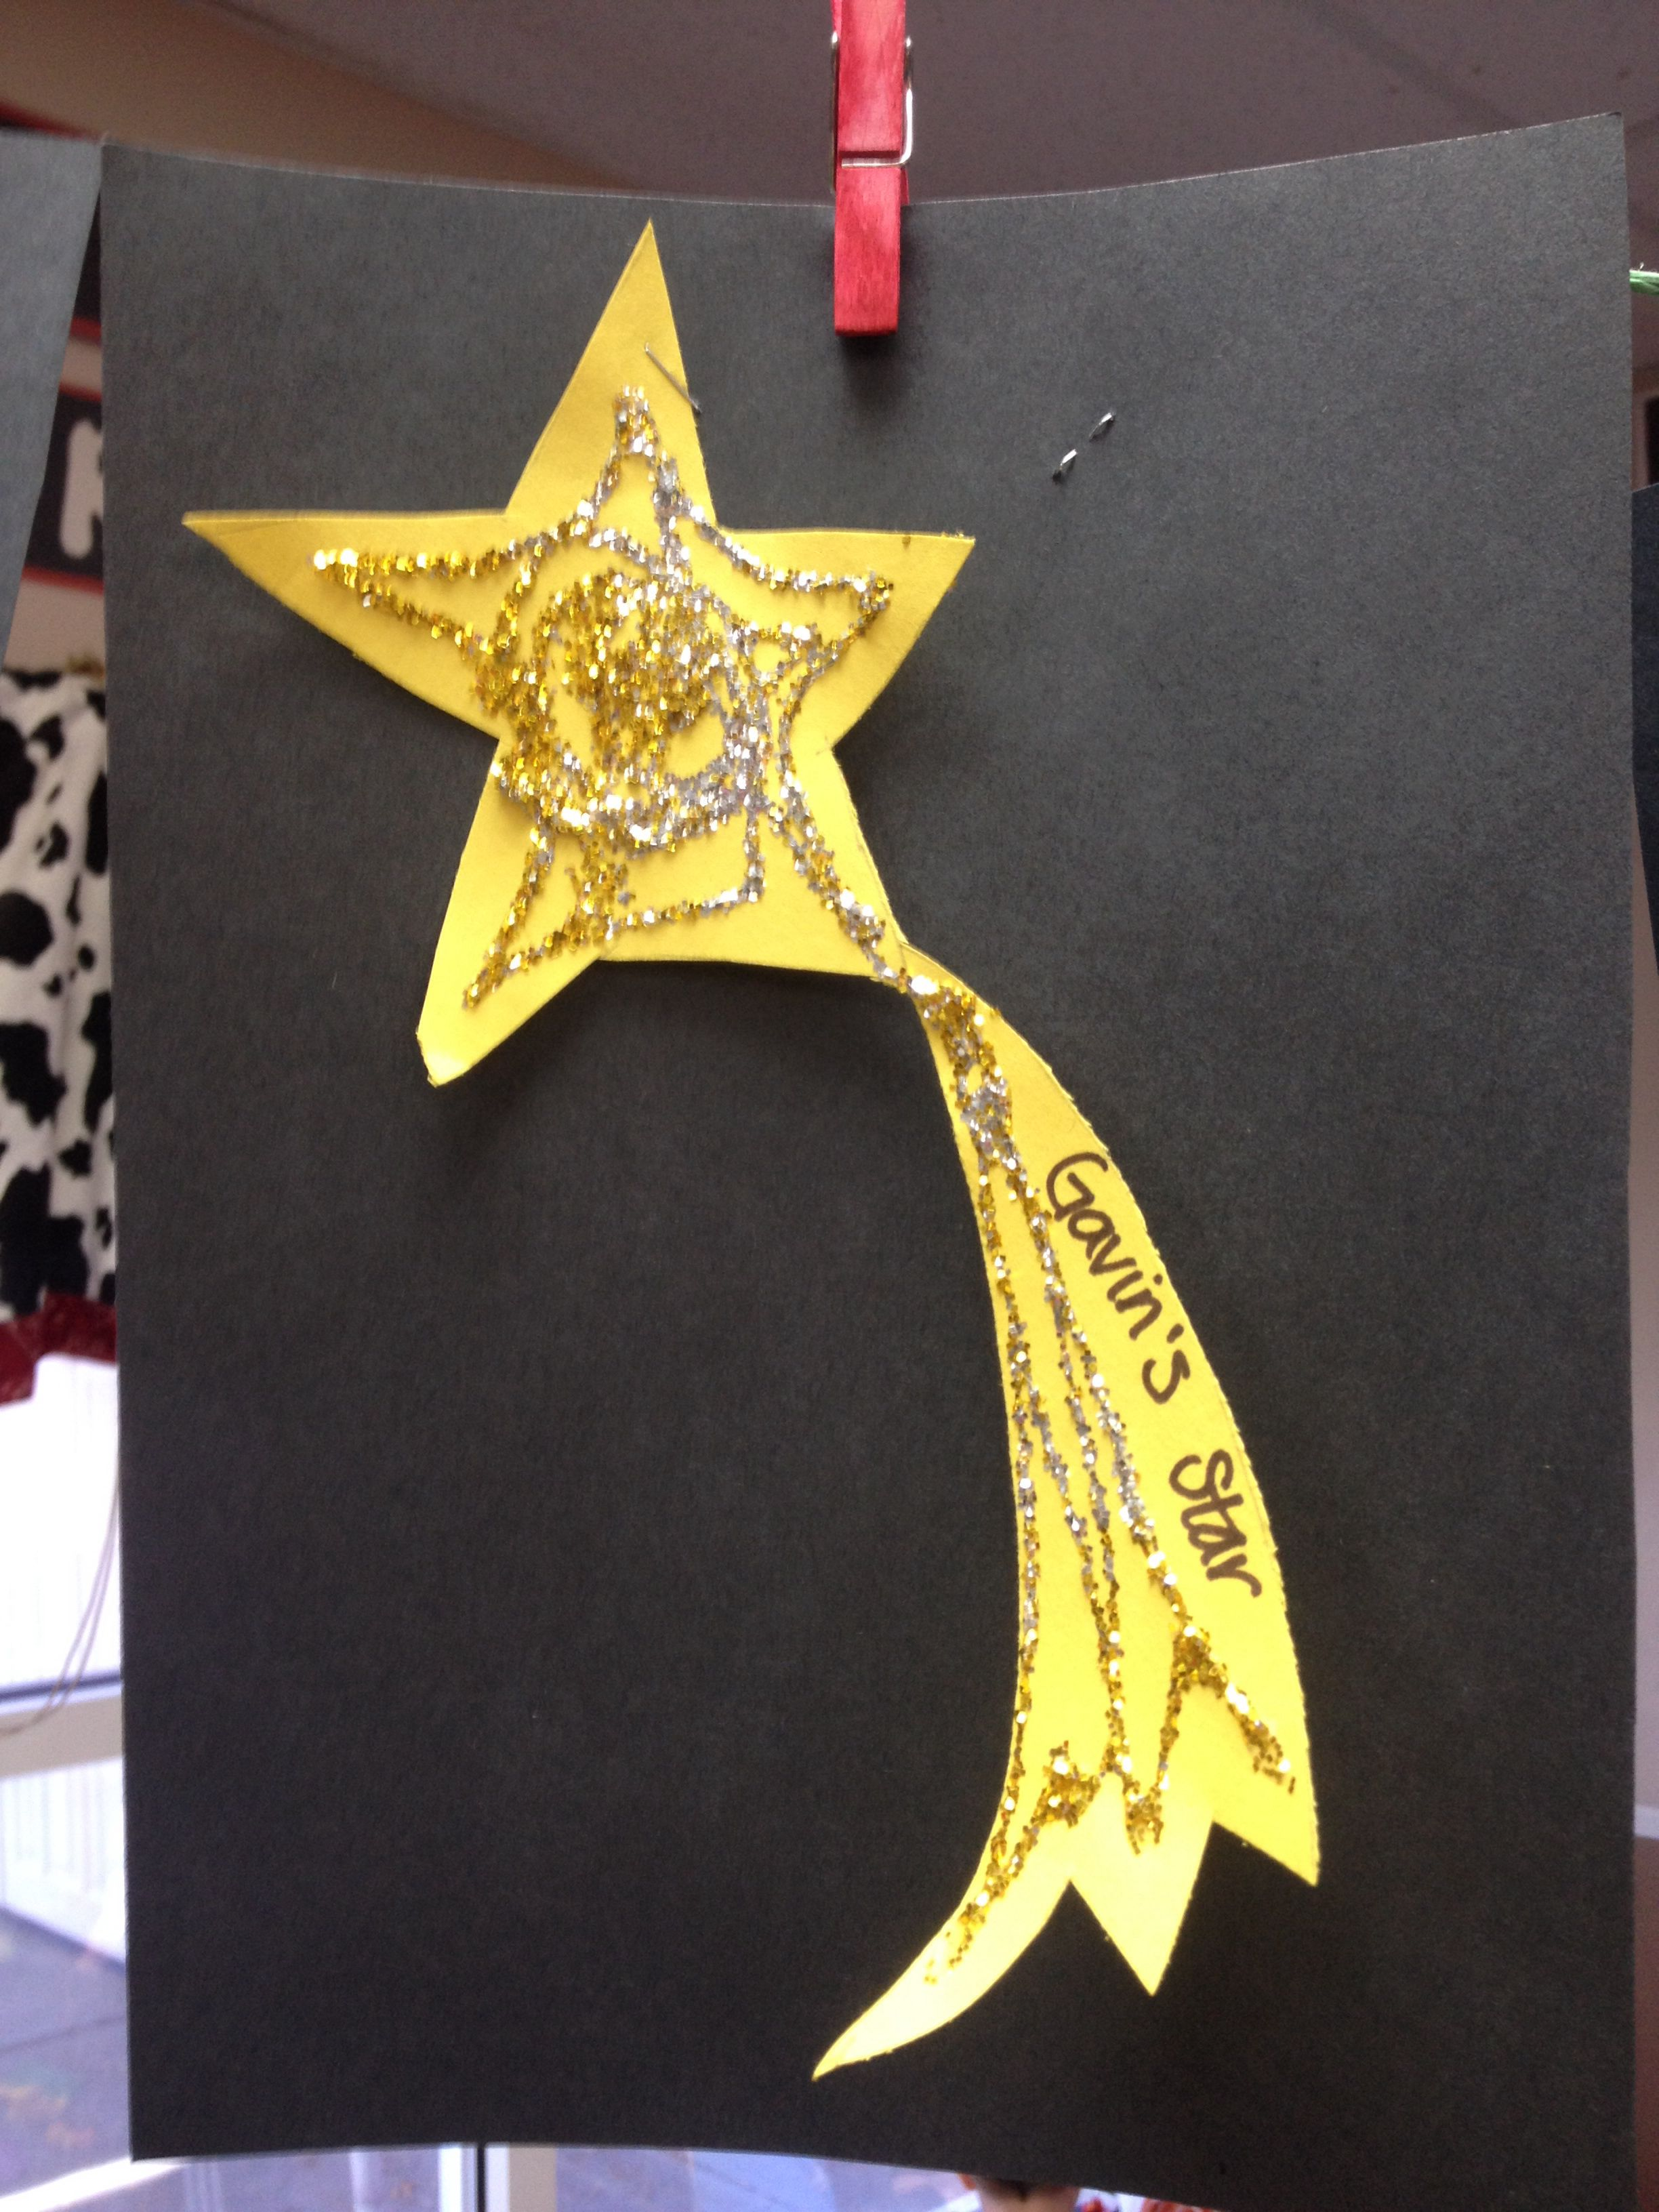 Shooting Star Art With Glitter